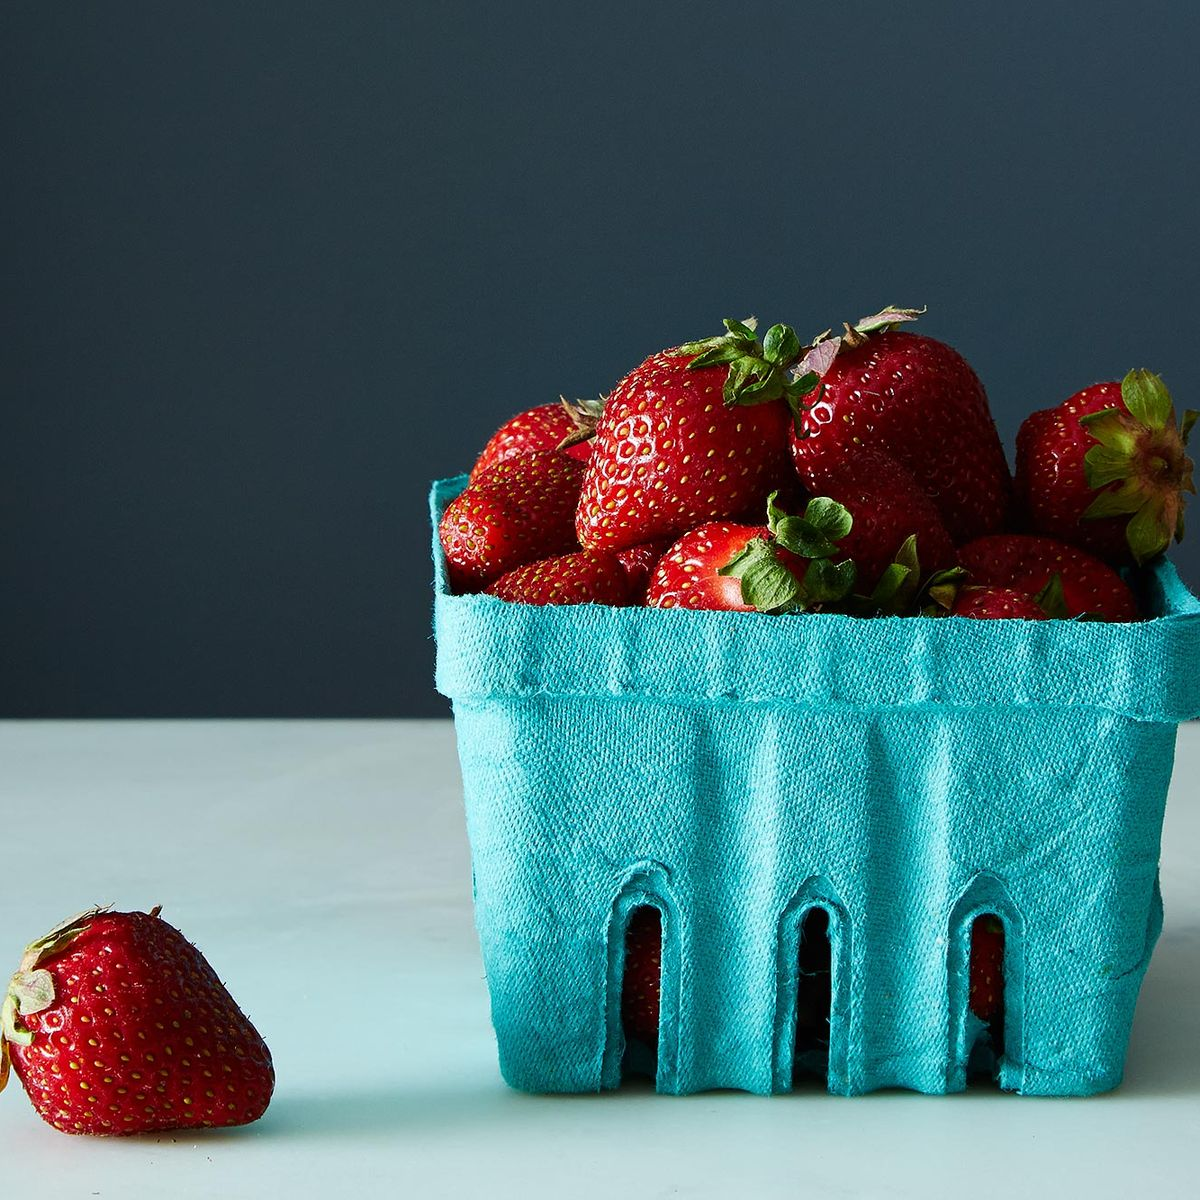 Why Is This Strawberry So Expensive?